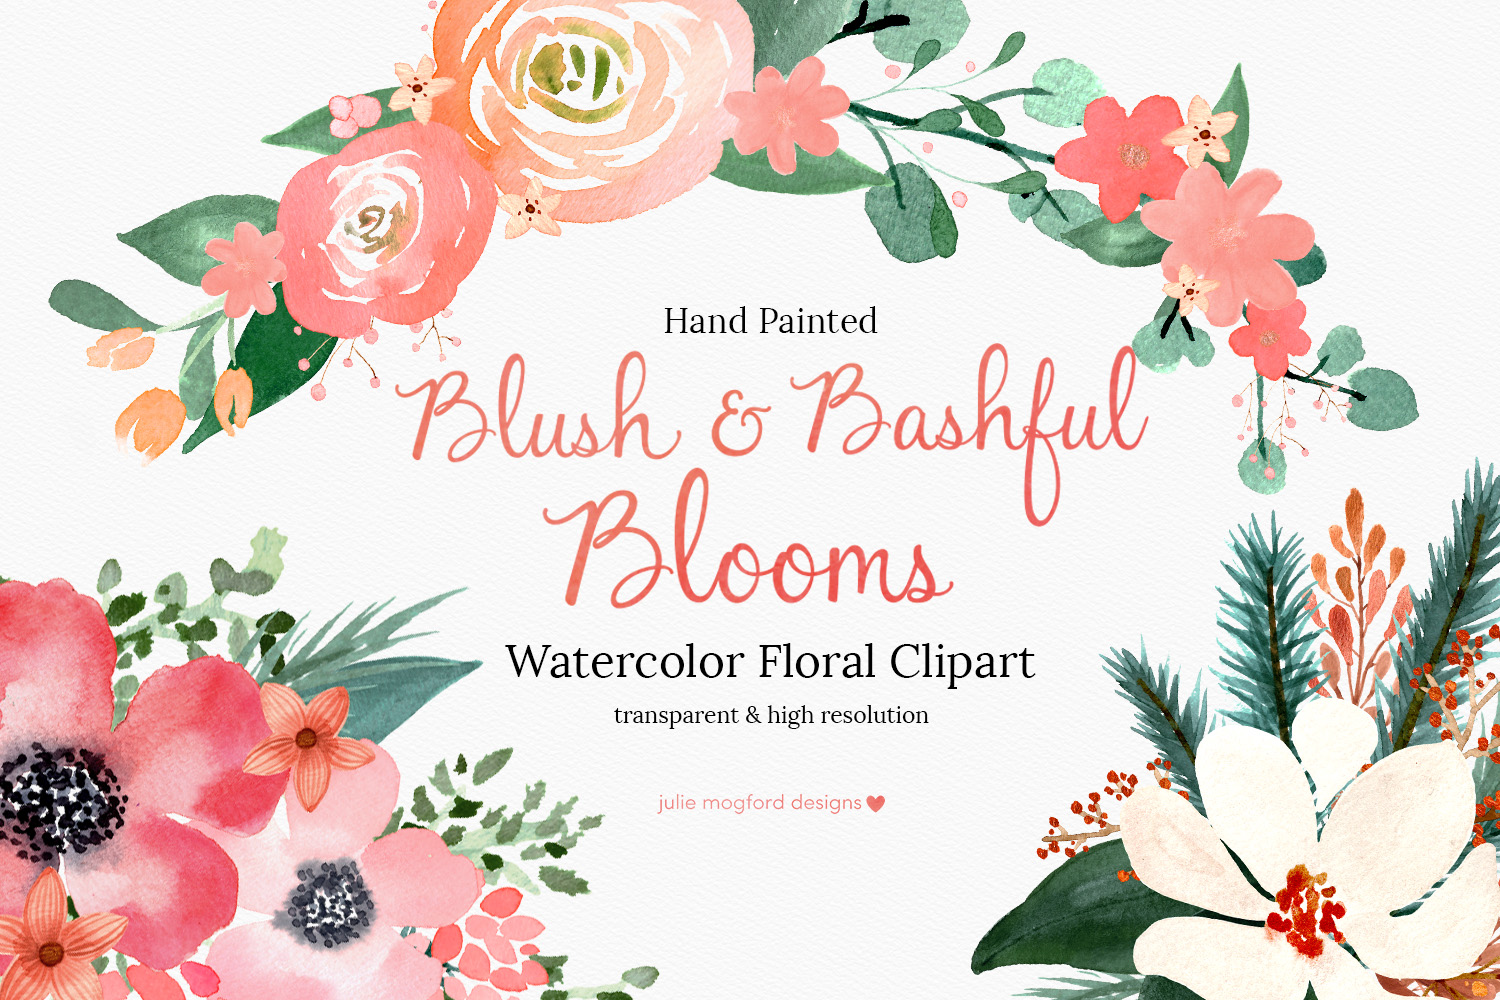 Blush & Bashful Blooms - Watercolor Floral Clipart example image 1